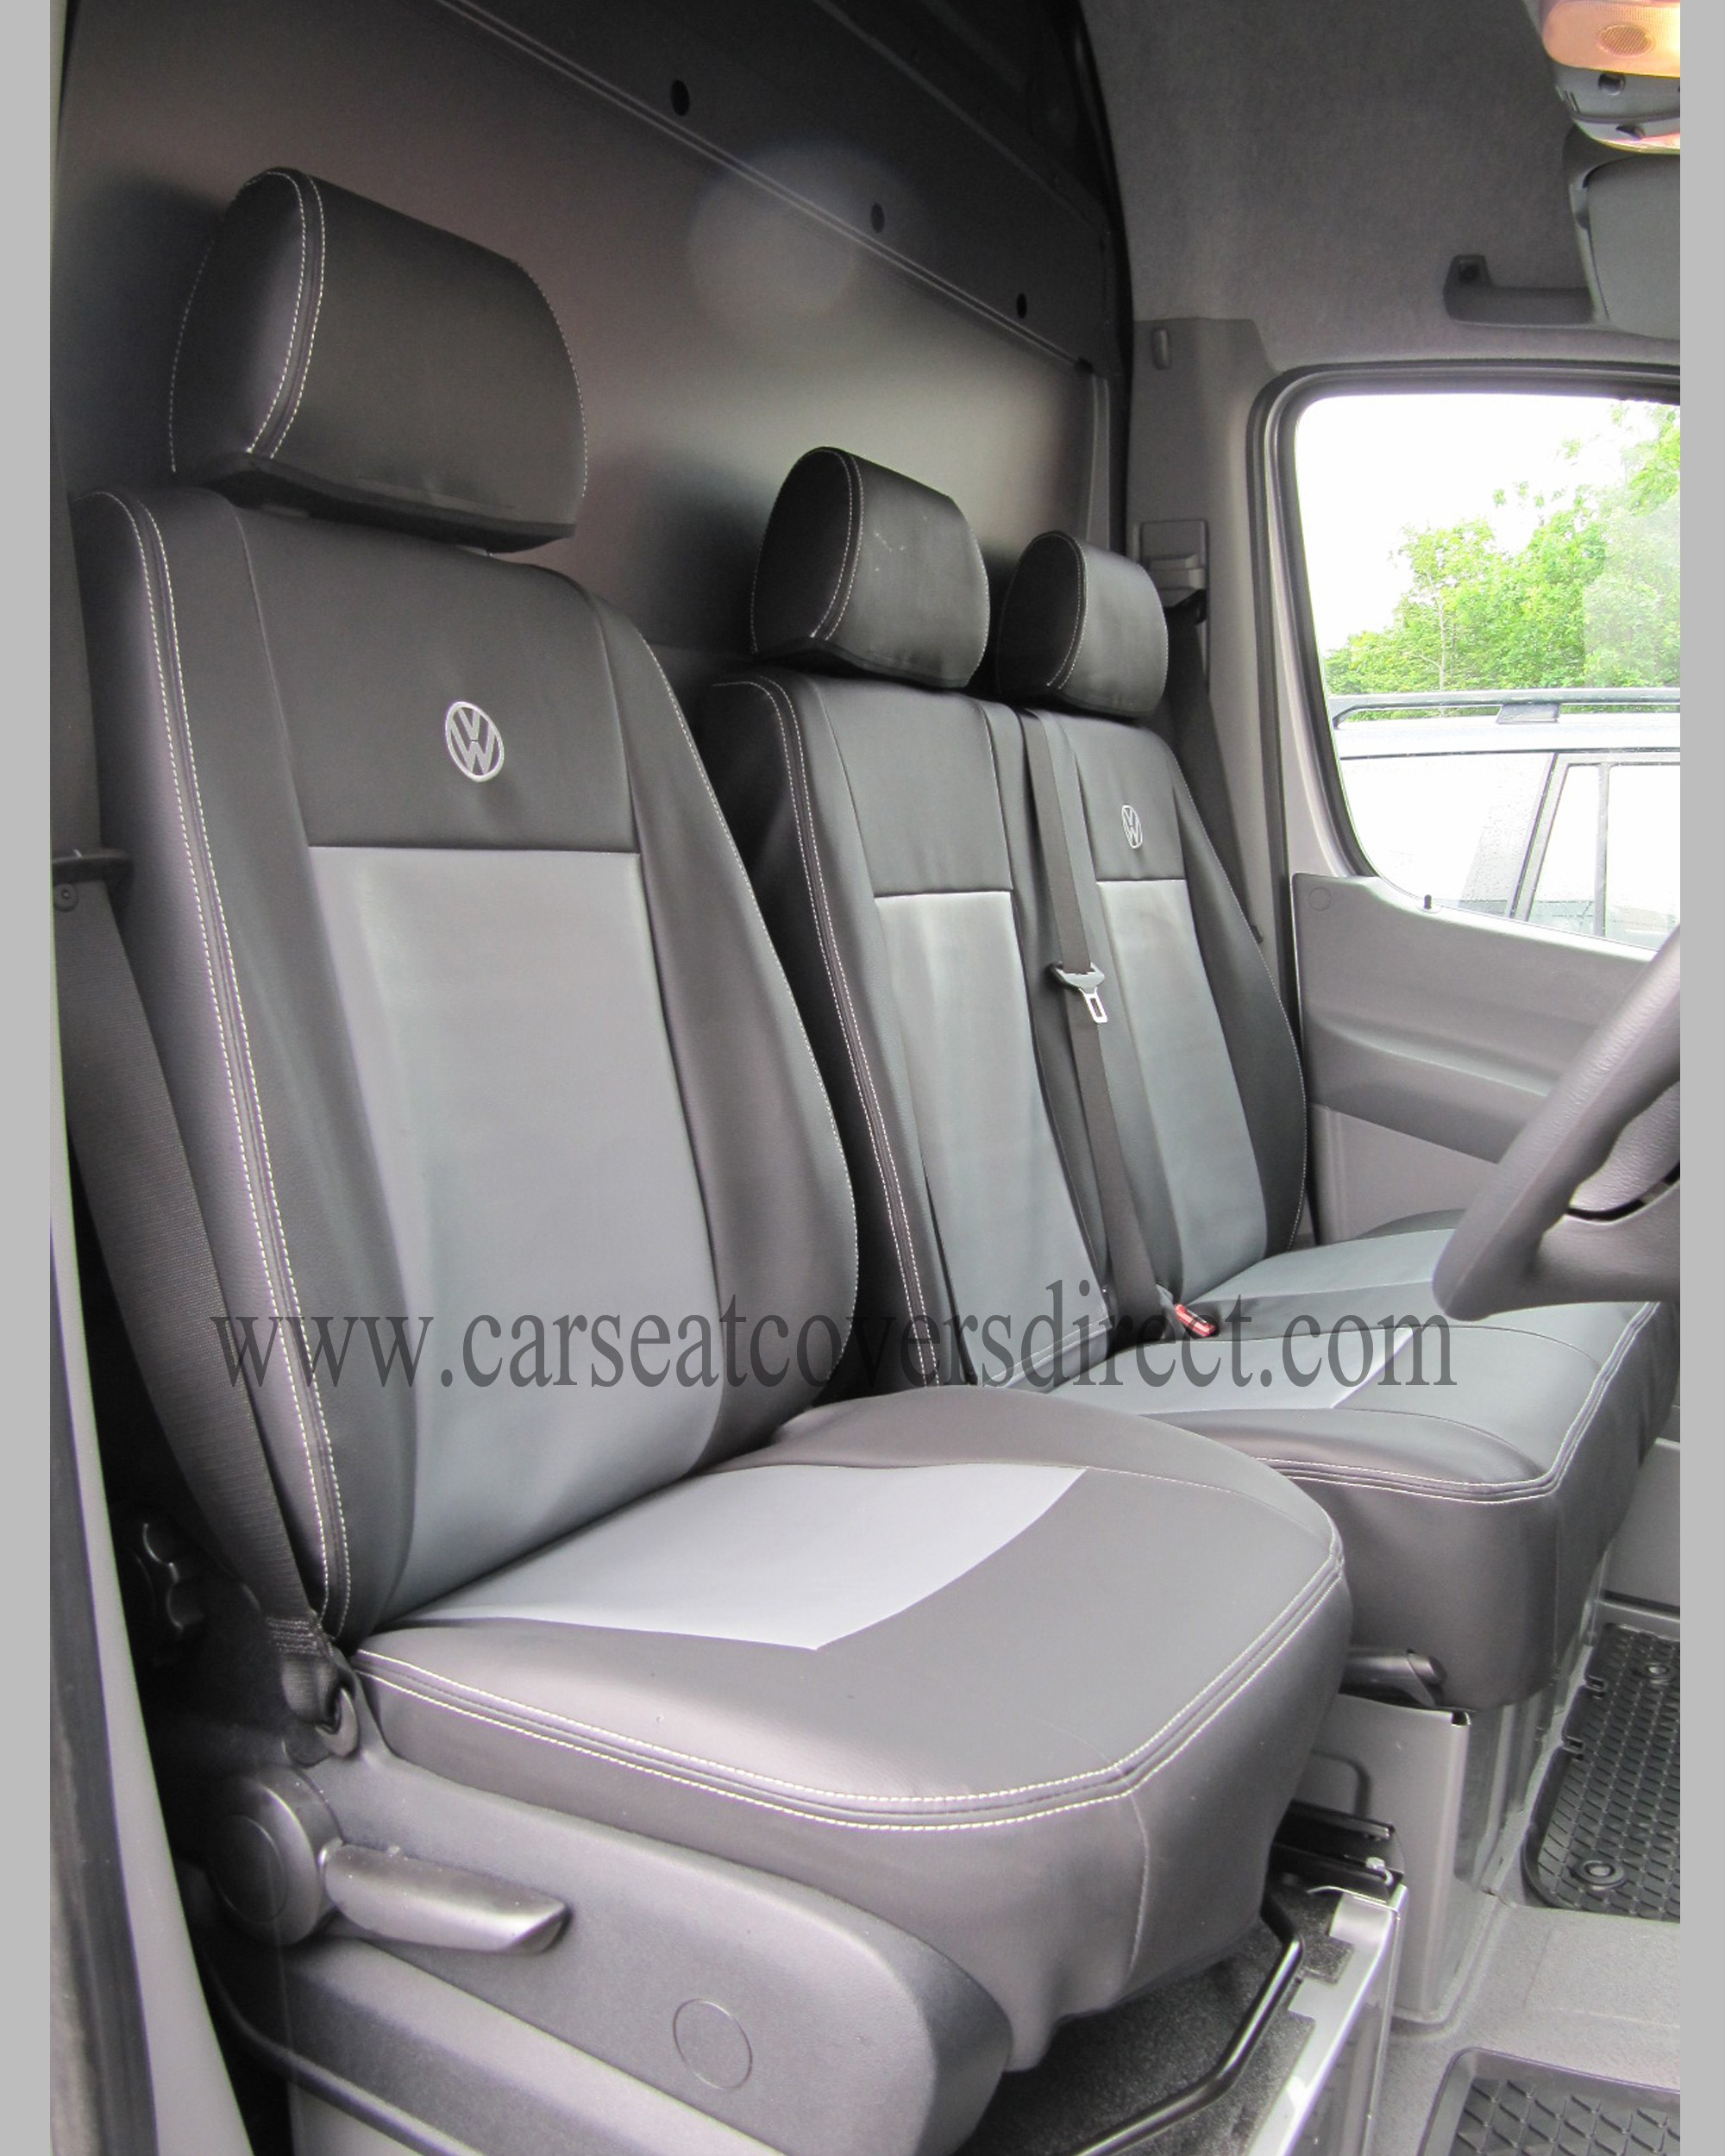 VOLKSWAGEN VW Crafter black & grey Seat Covers